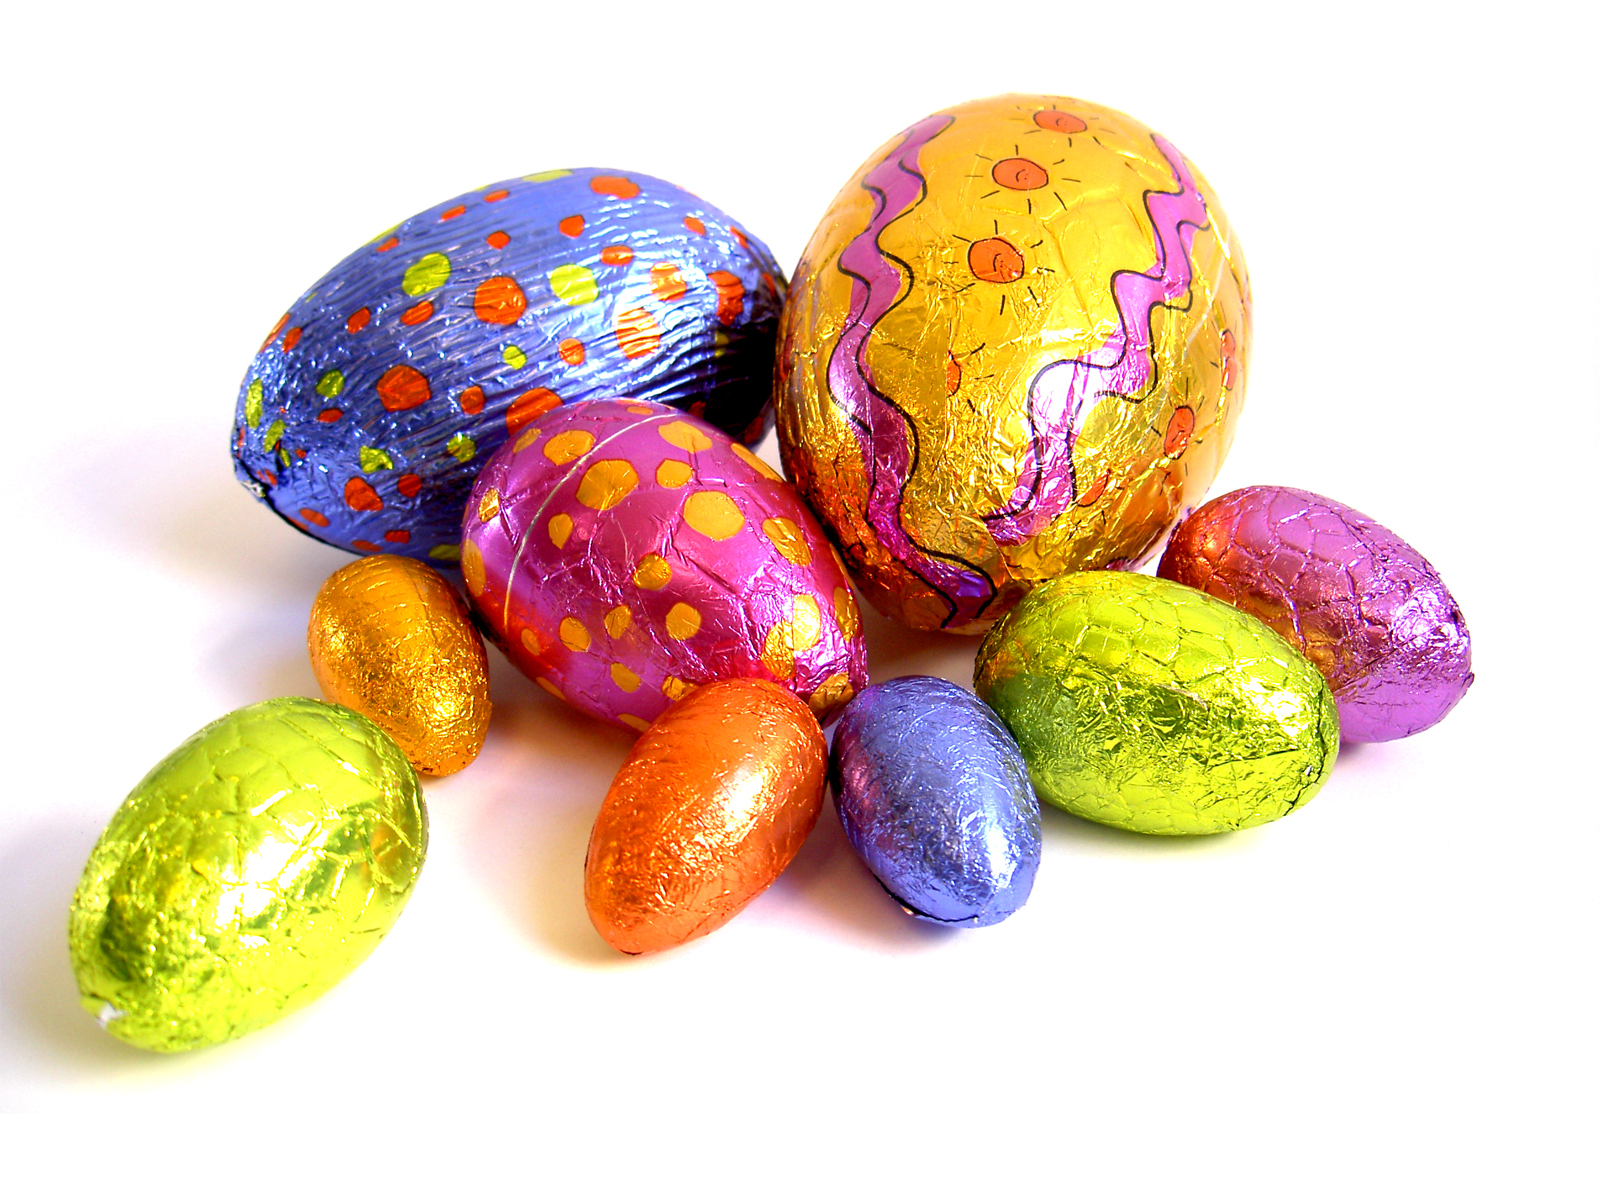 http://upload.wikimedia.org/wikipedia/commons/4/43/Easter-Eggs.jpg